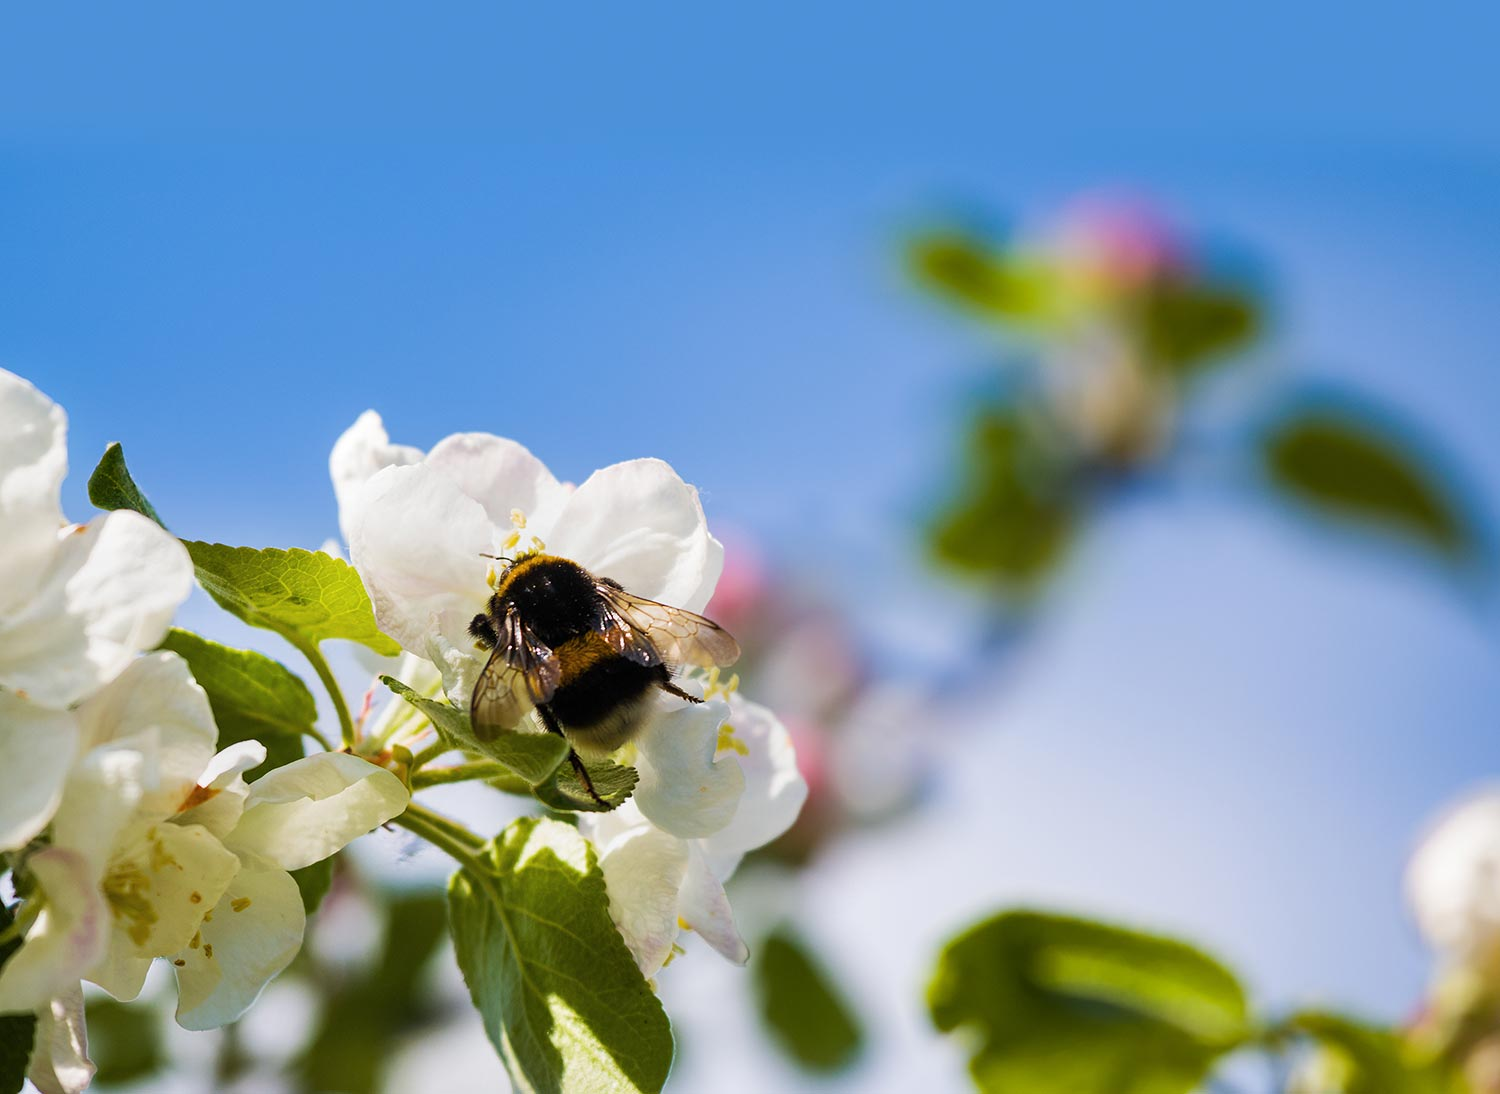 Bumblebee on an apple blossom